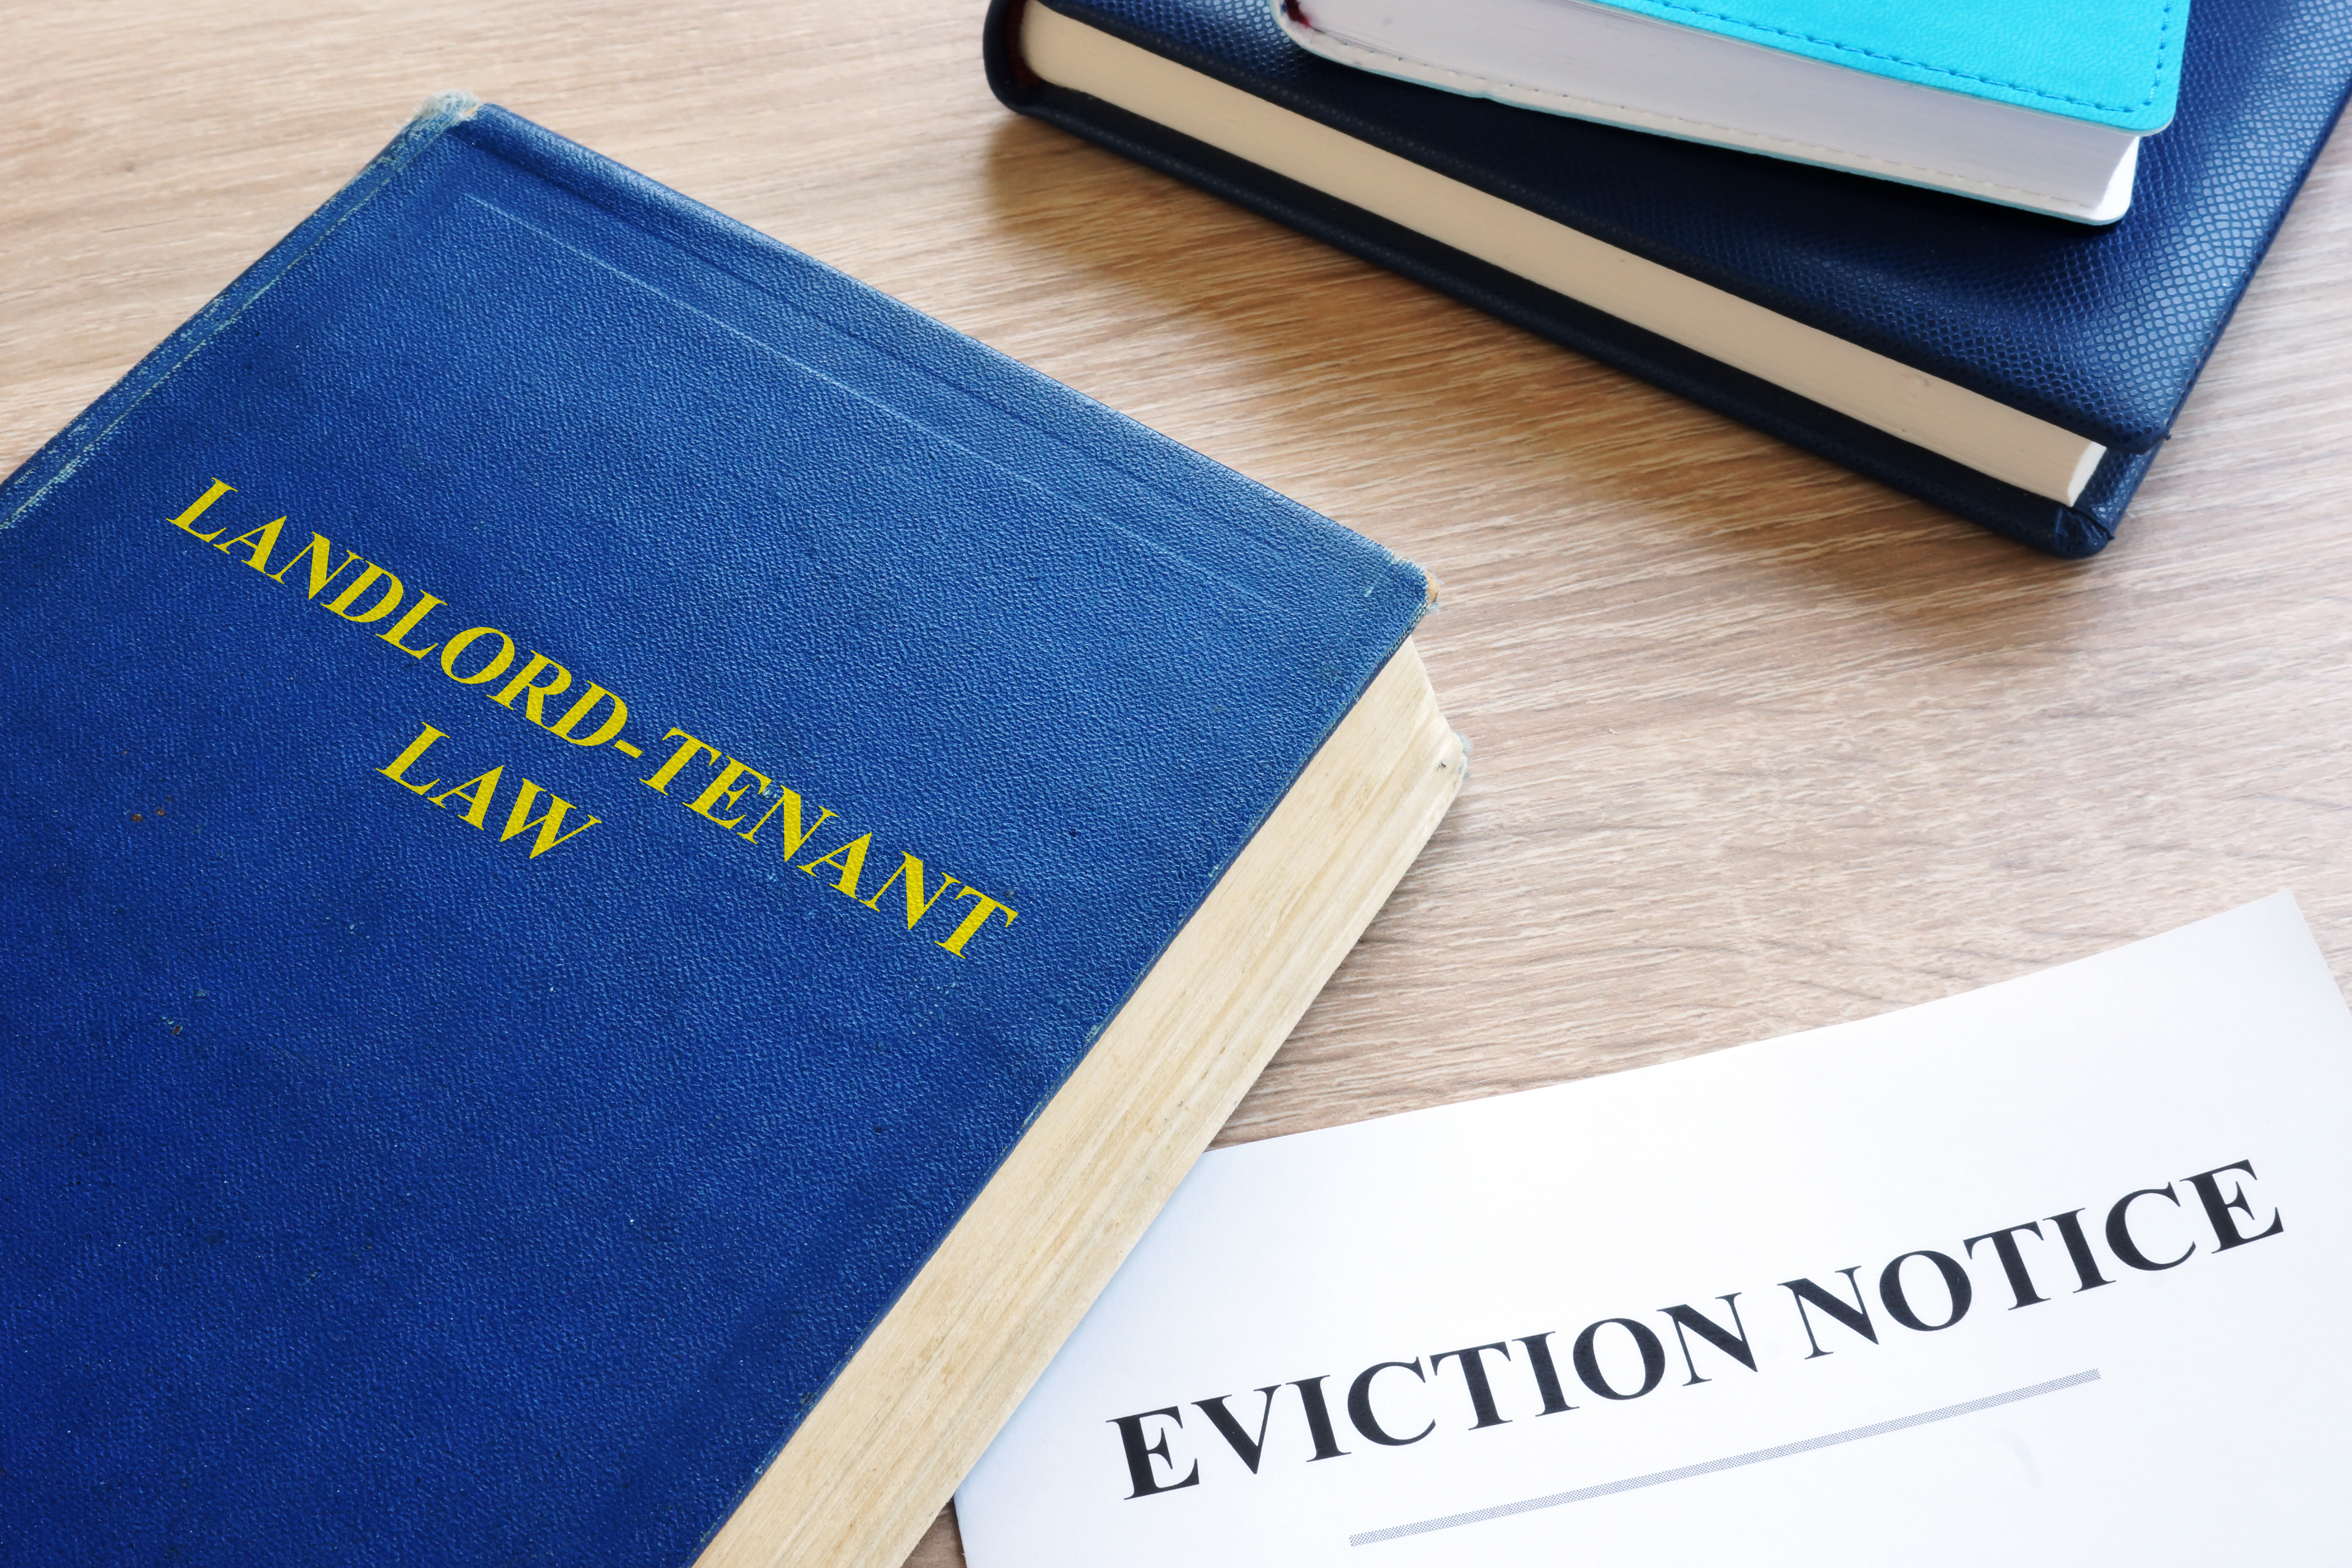 Landlord-Tenant Law and eviction notice on a desk.